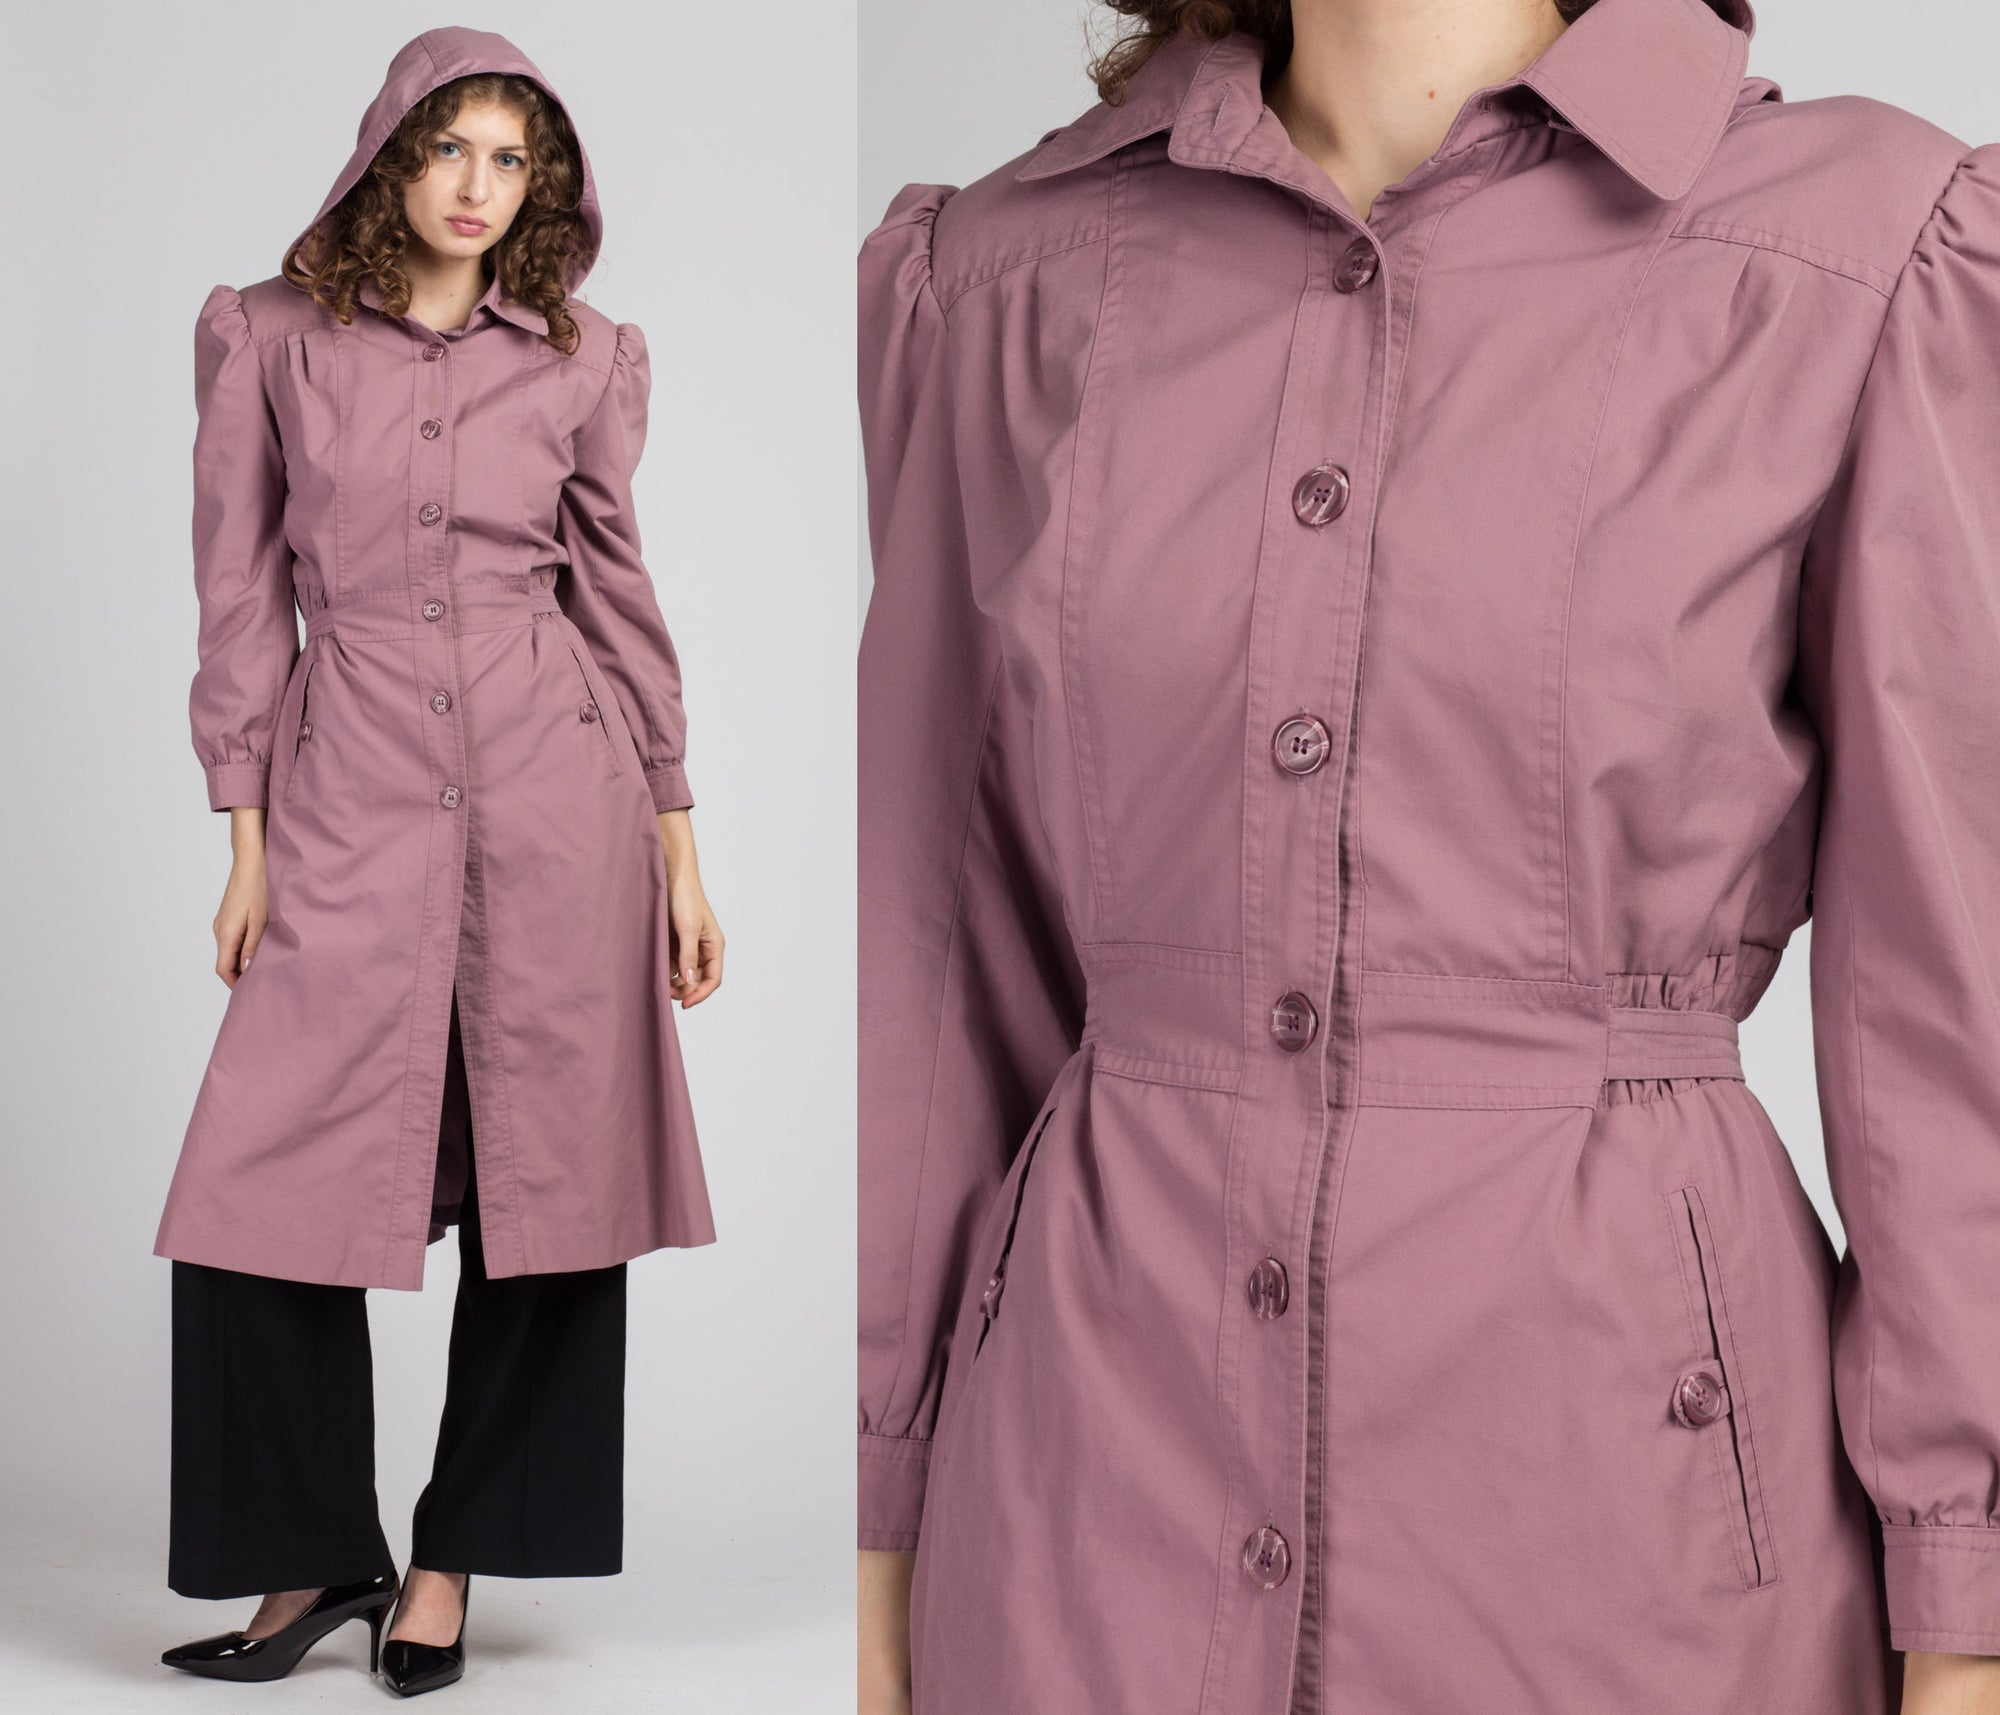 80s Mauve Puff Sleeve Hooded Trench Coat - Medium to Large